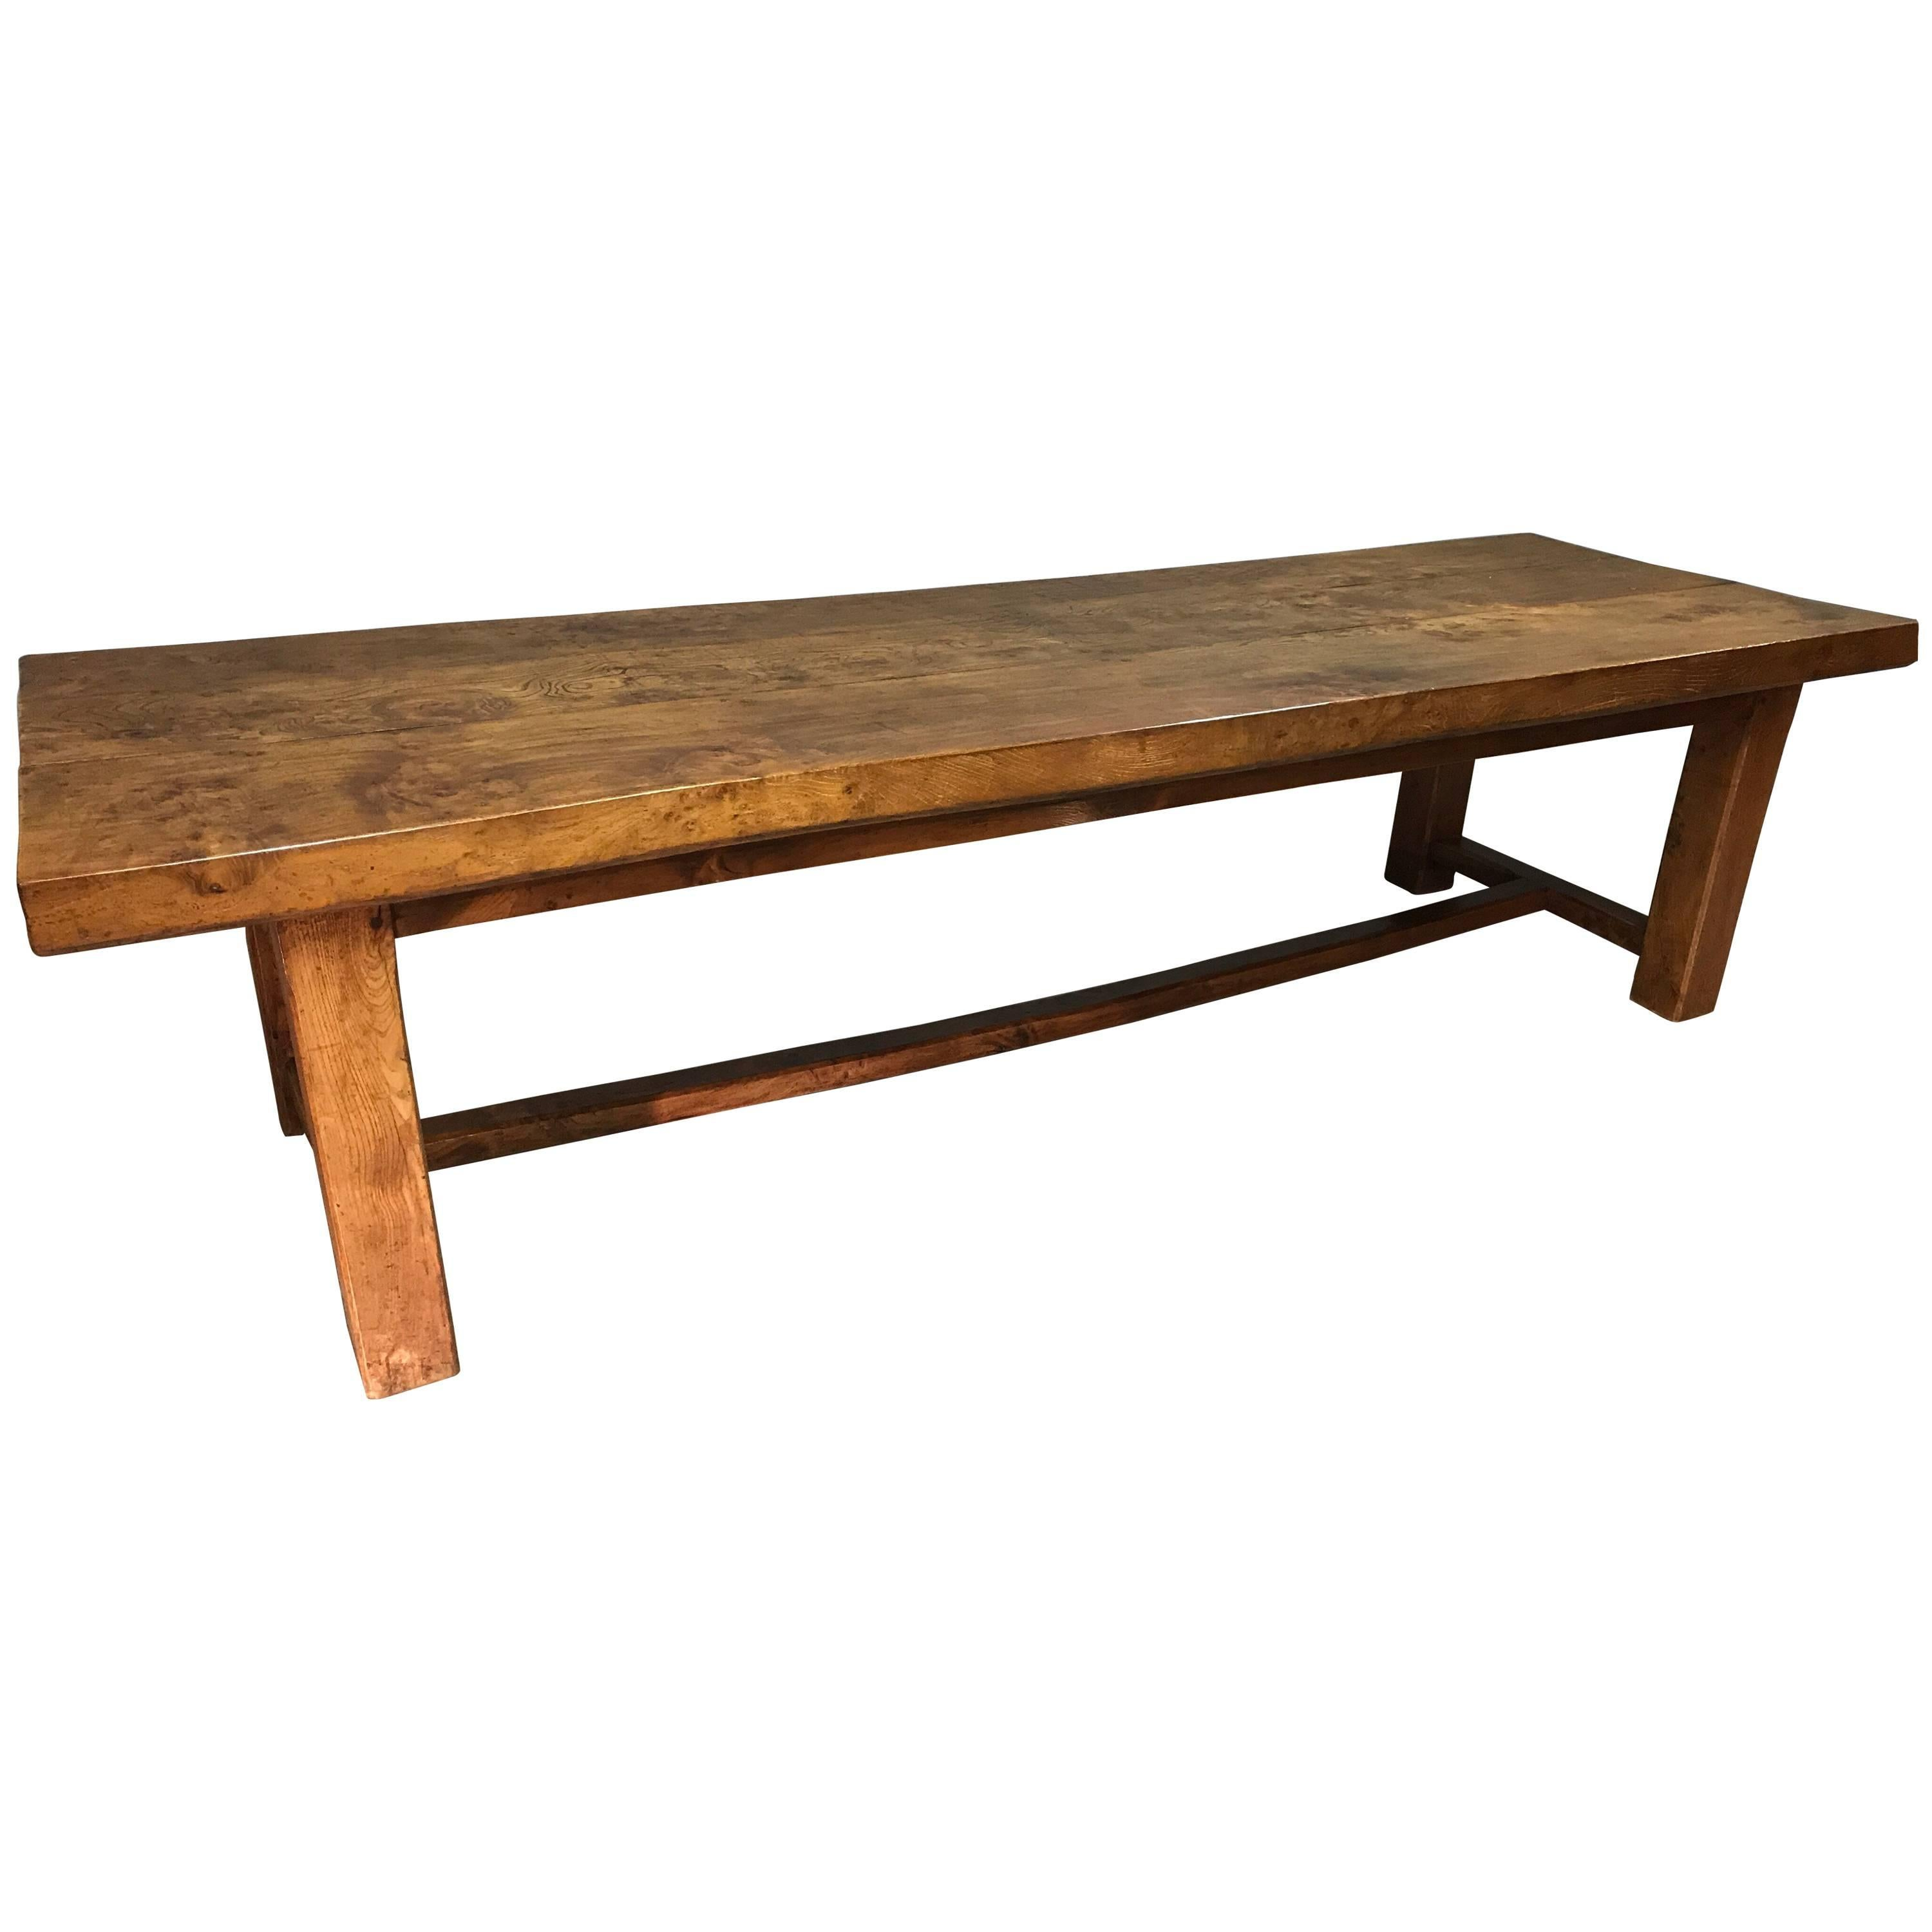 Late 19th Century Exceptionally Large Elm French Farmhouse Table